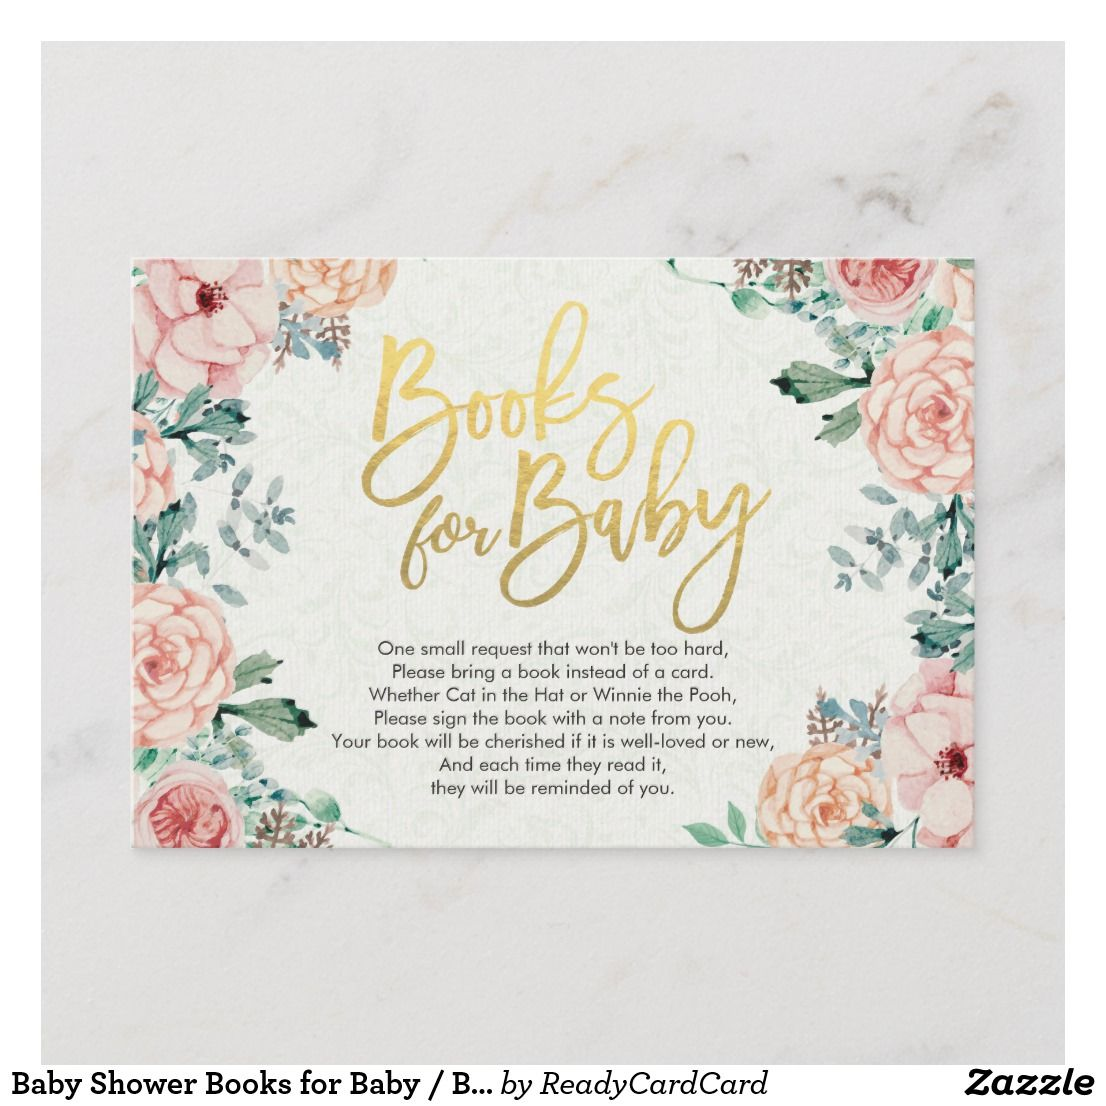 Baby shower books for baby bring a book request